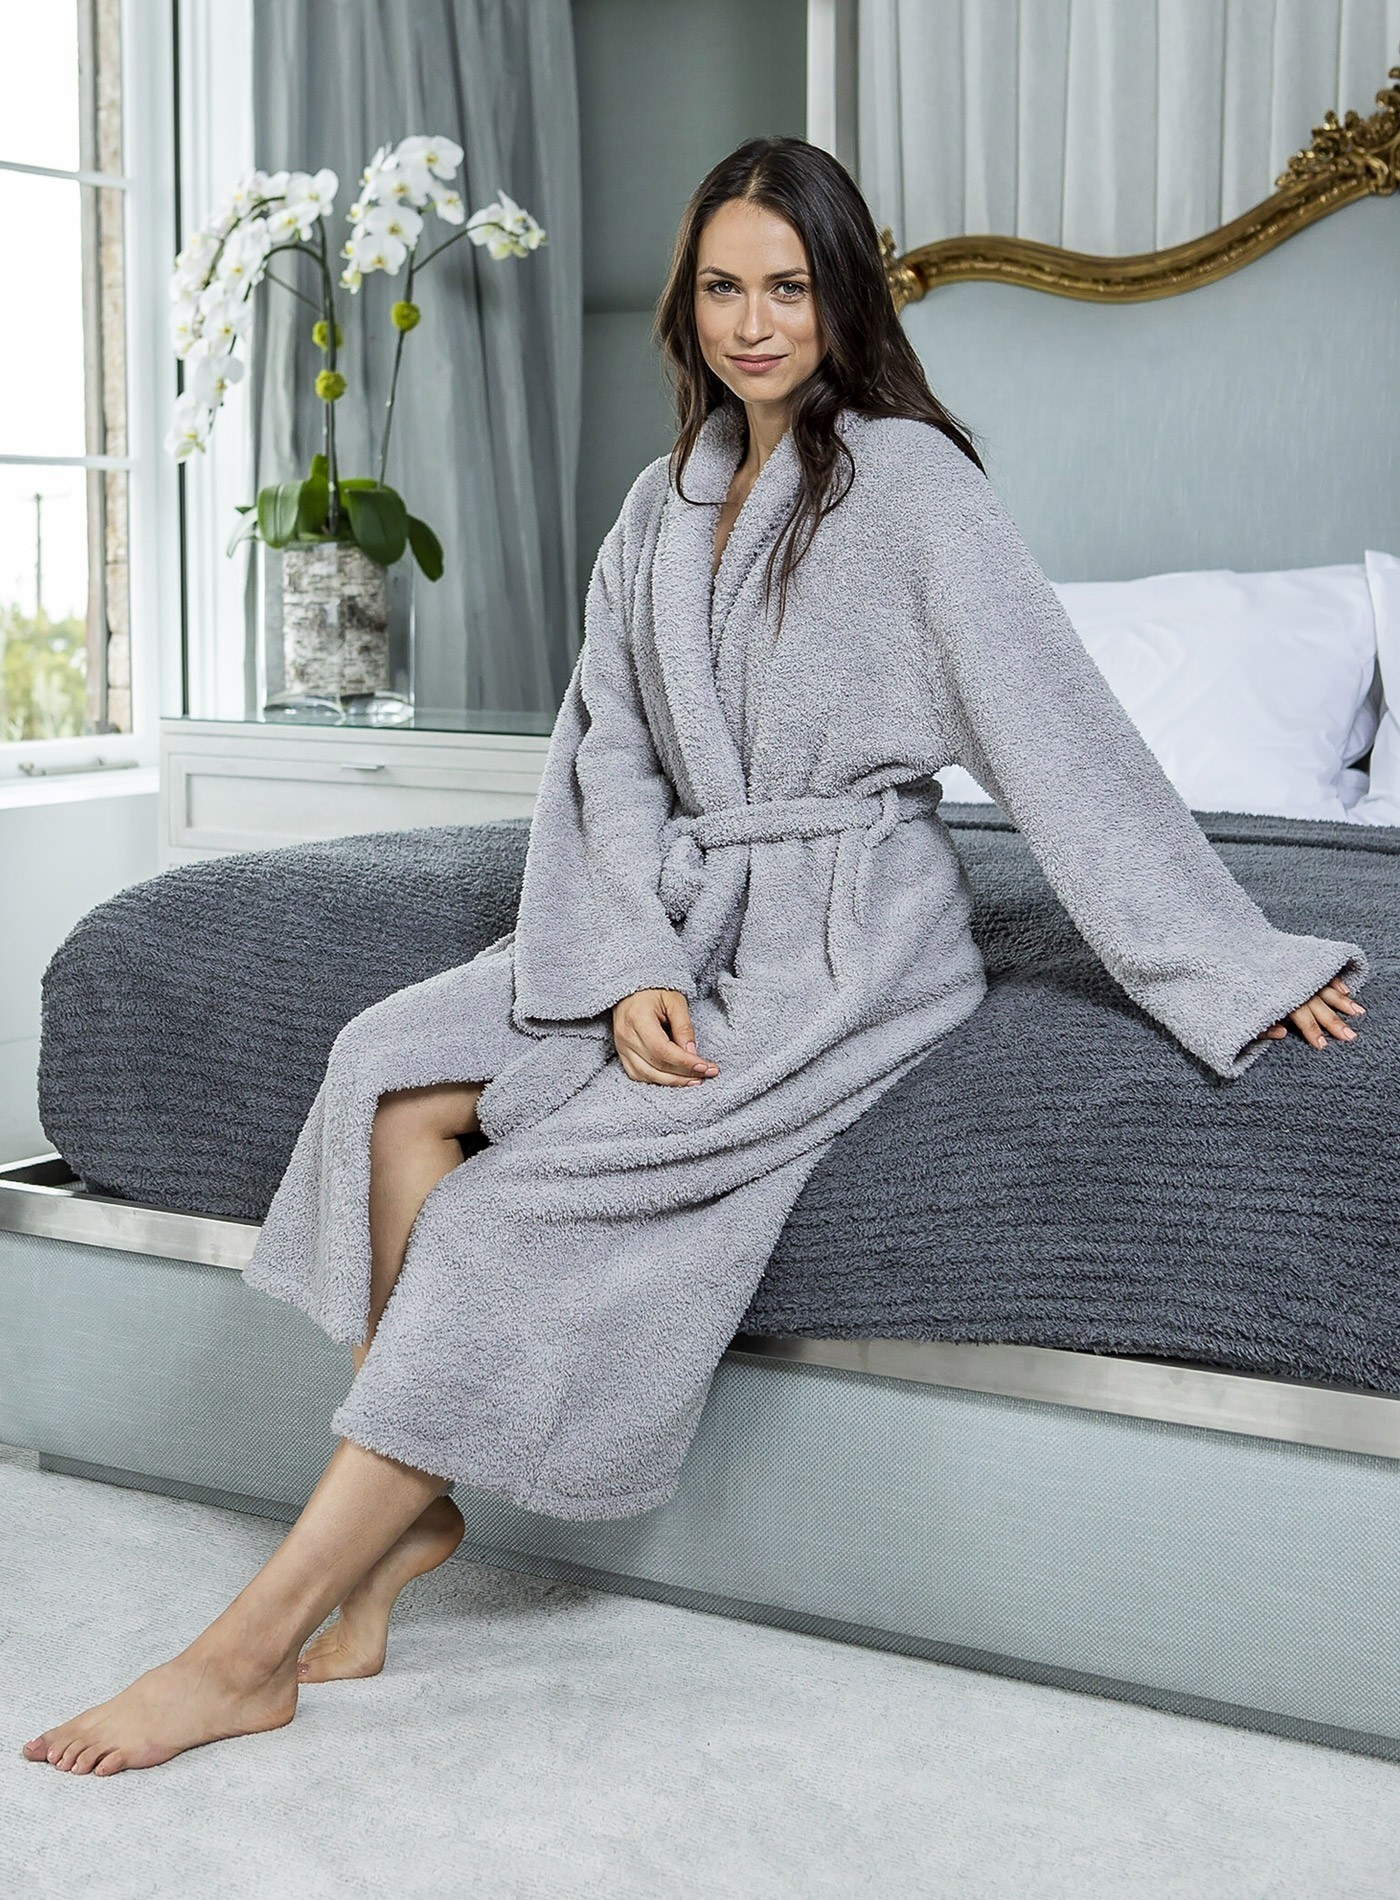 model wearing the mid-calf length fuzzy robe in light grey